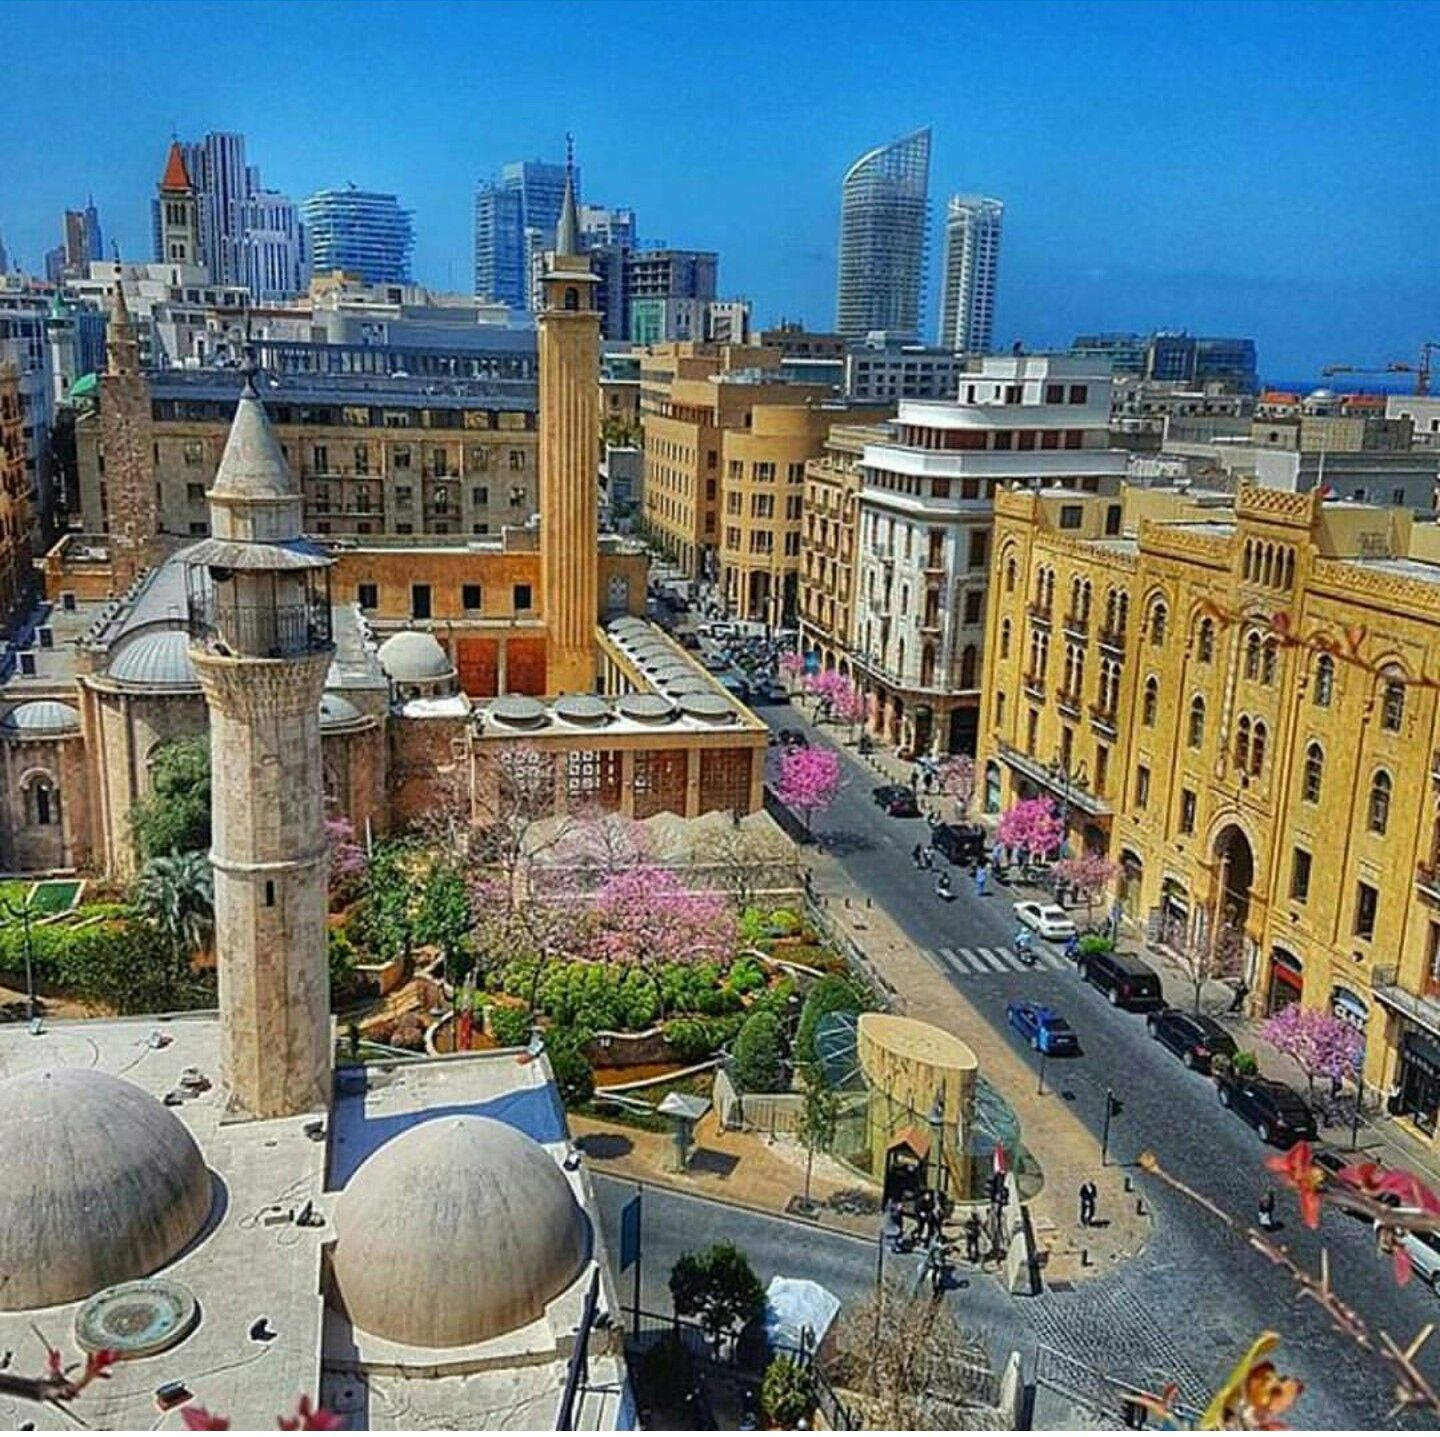 Downtown Beirut With Images Lebanon Culture Travel Beirut